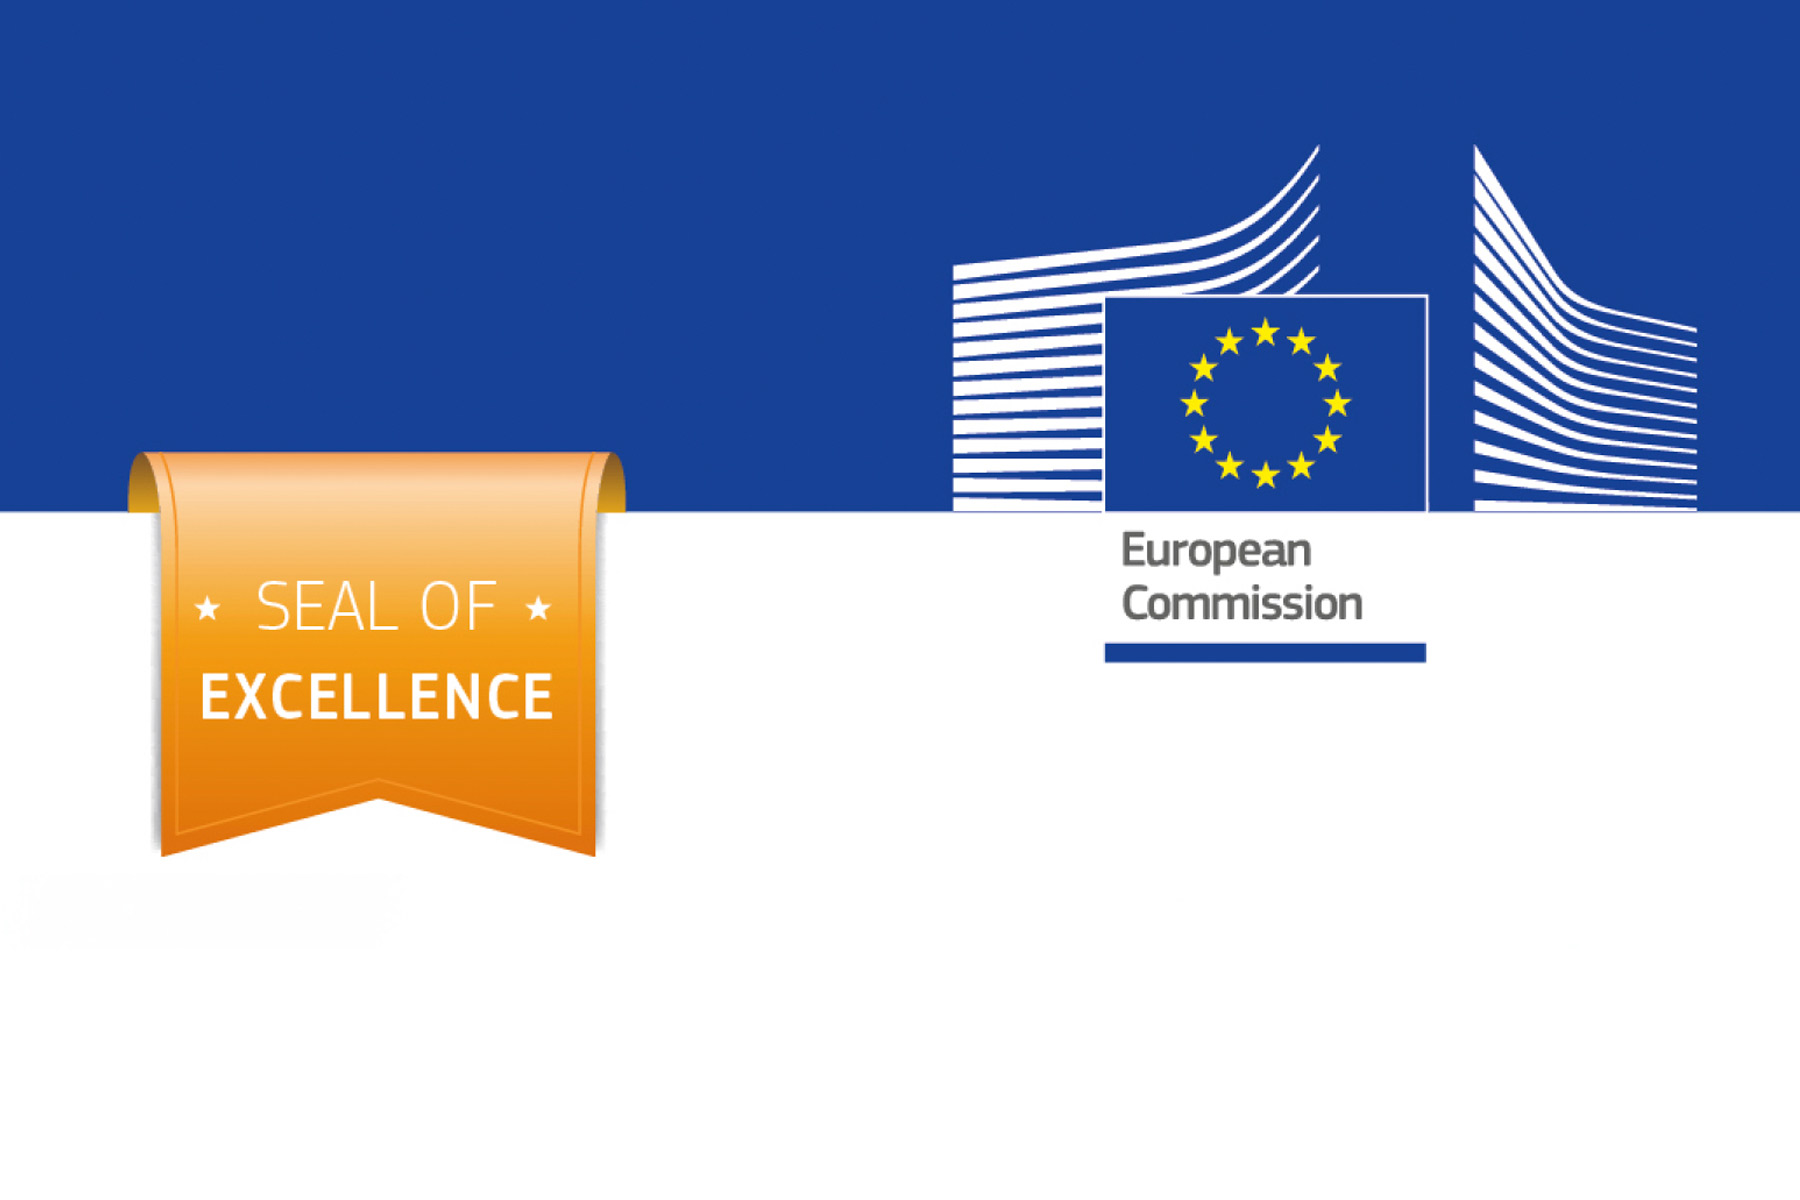 Robot, S.A. gets the Seal of Excellence from the European Commission